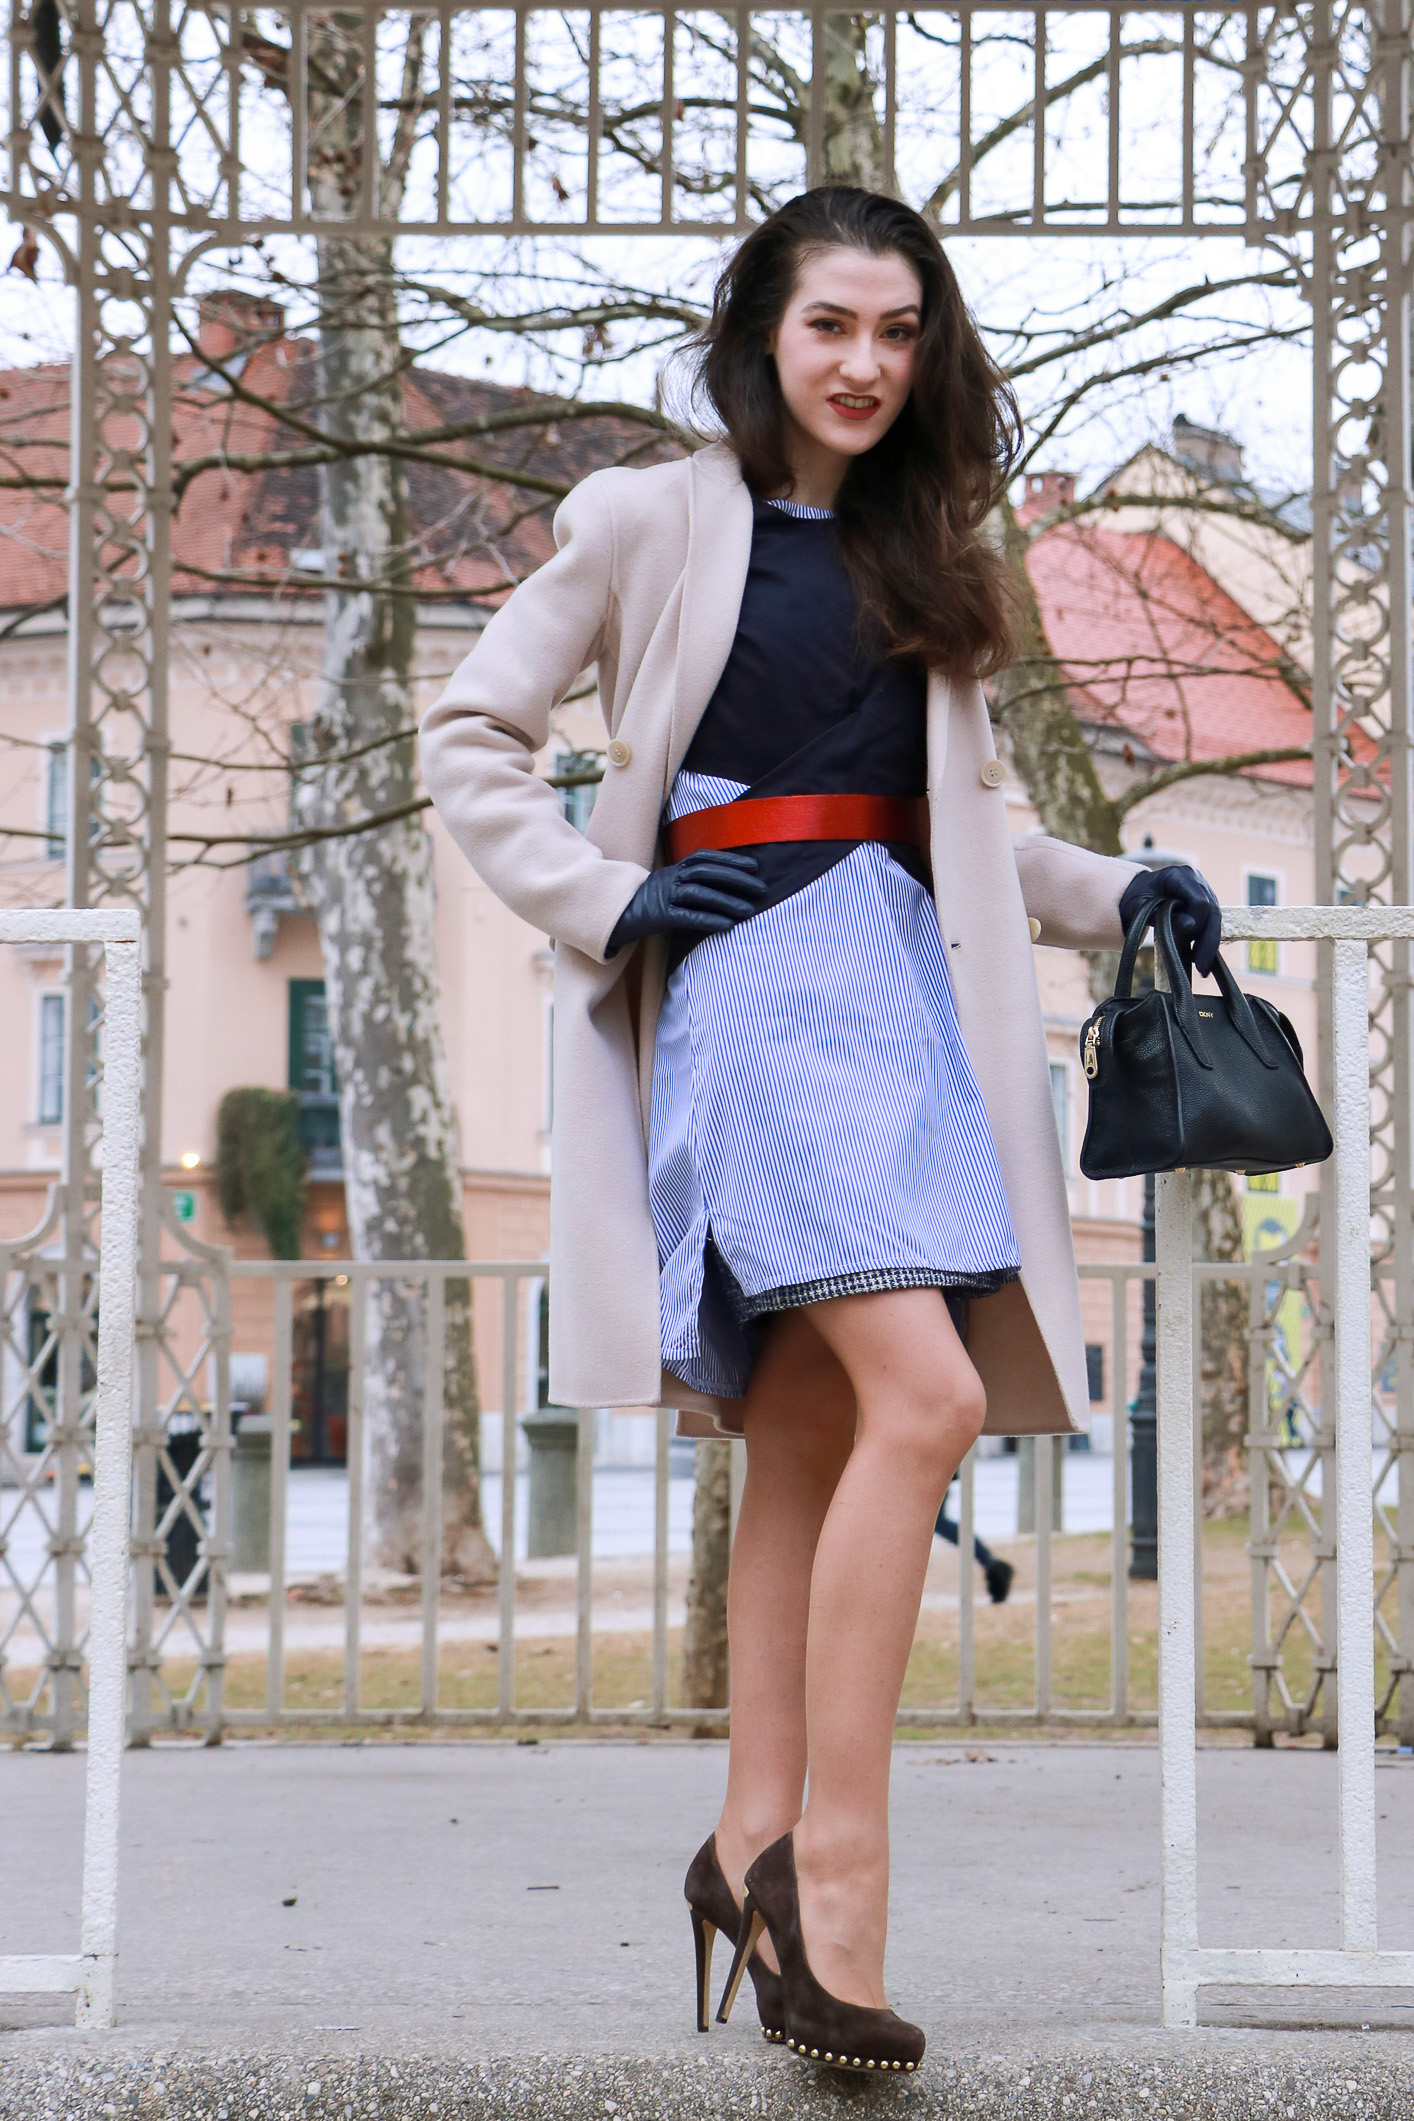 Fashion Blogger Veronika Lipar of Brunette from Wall Street sharing how to wear the striped shirt dress